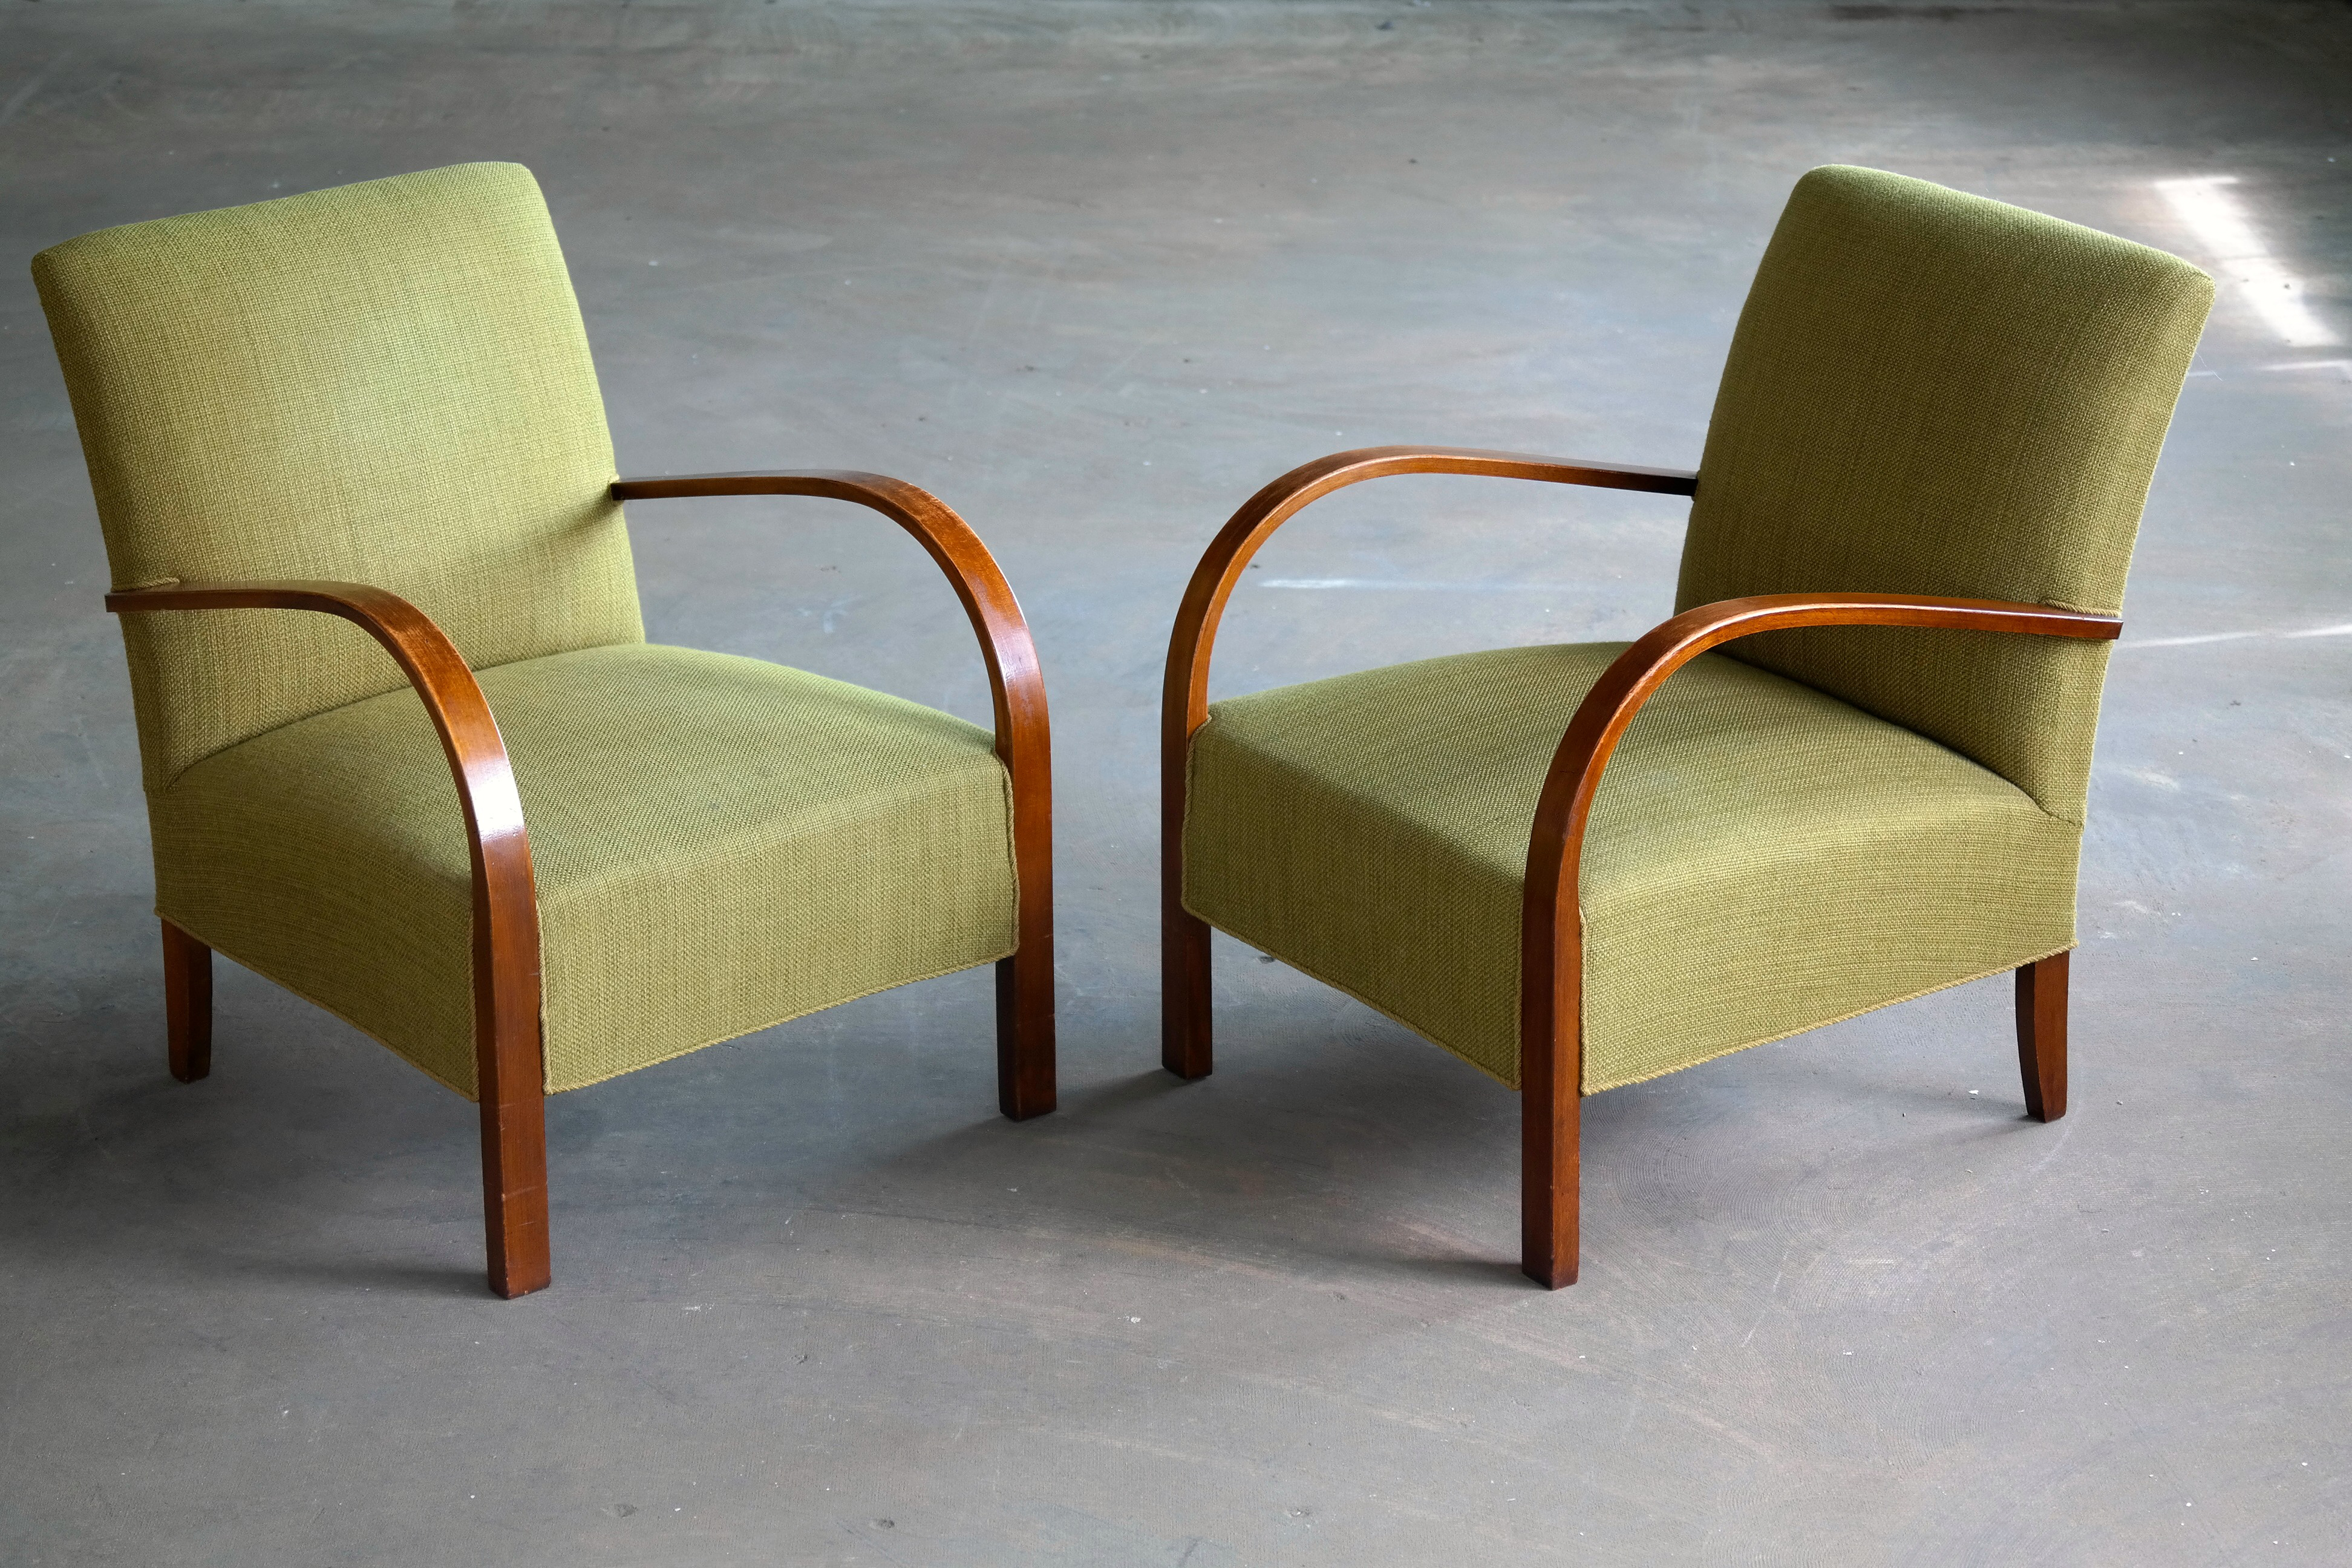 A Pair Of Early Midcentury Danish Art Deco Low Lounge Chairs For Sale    Image 11